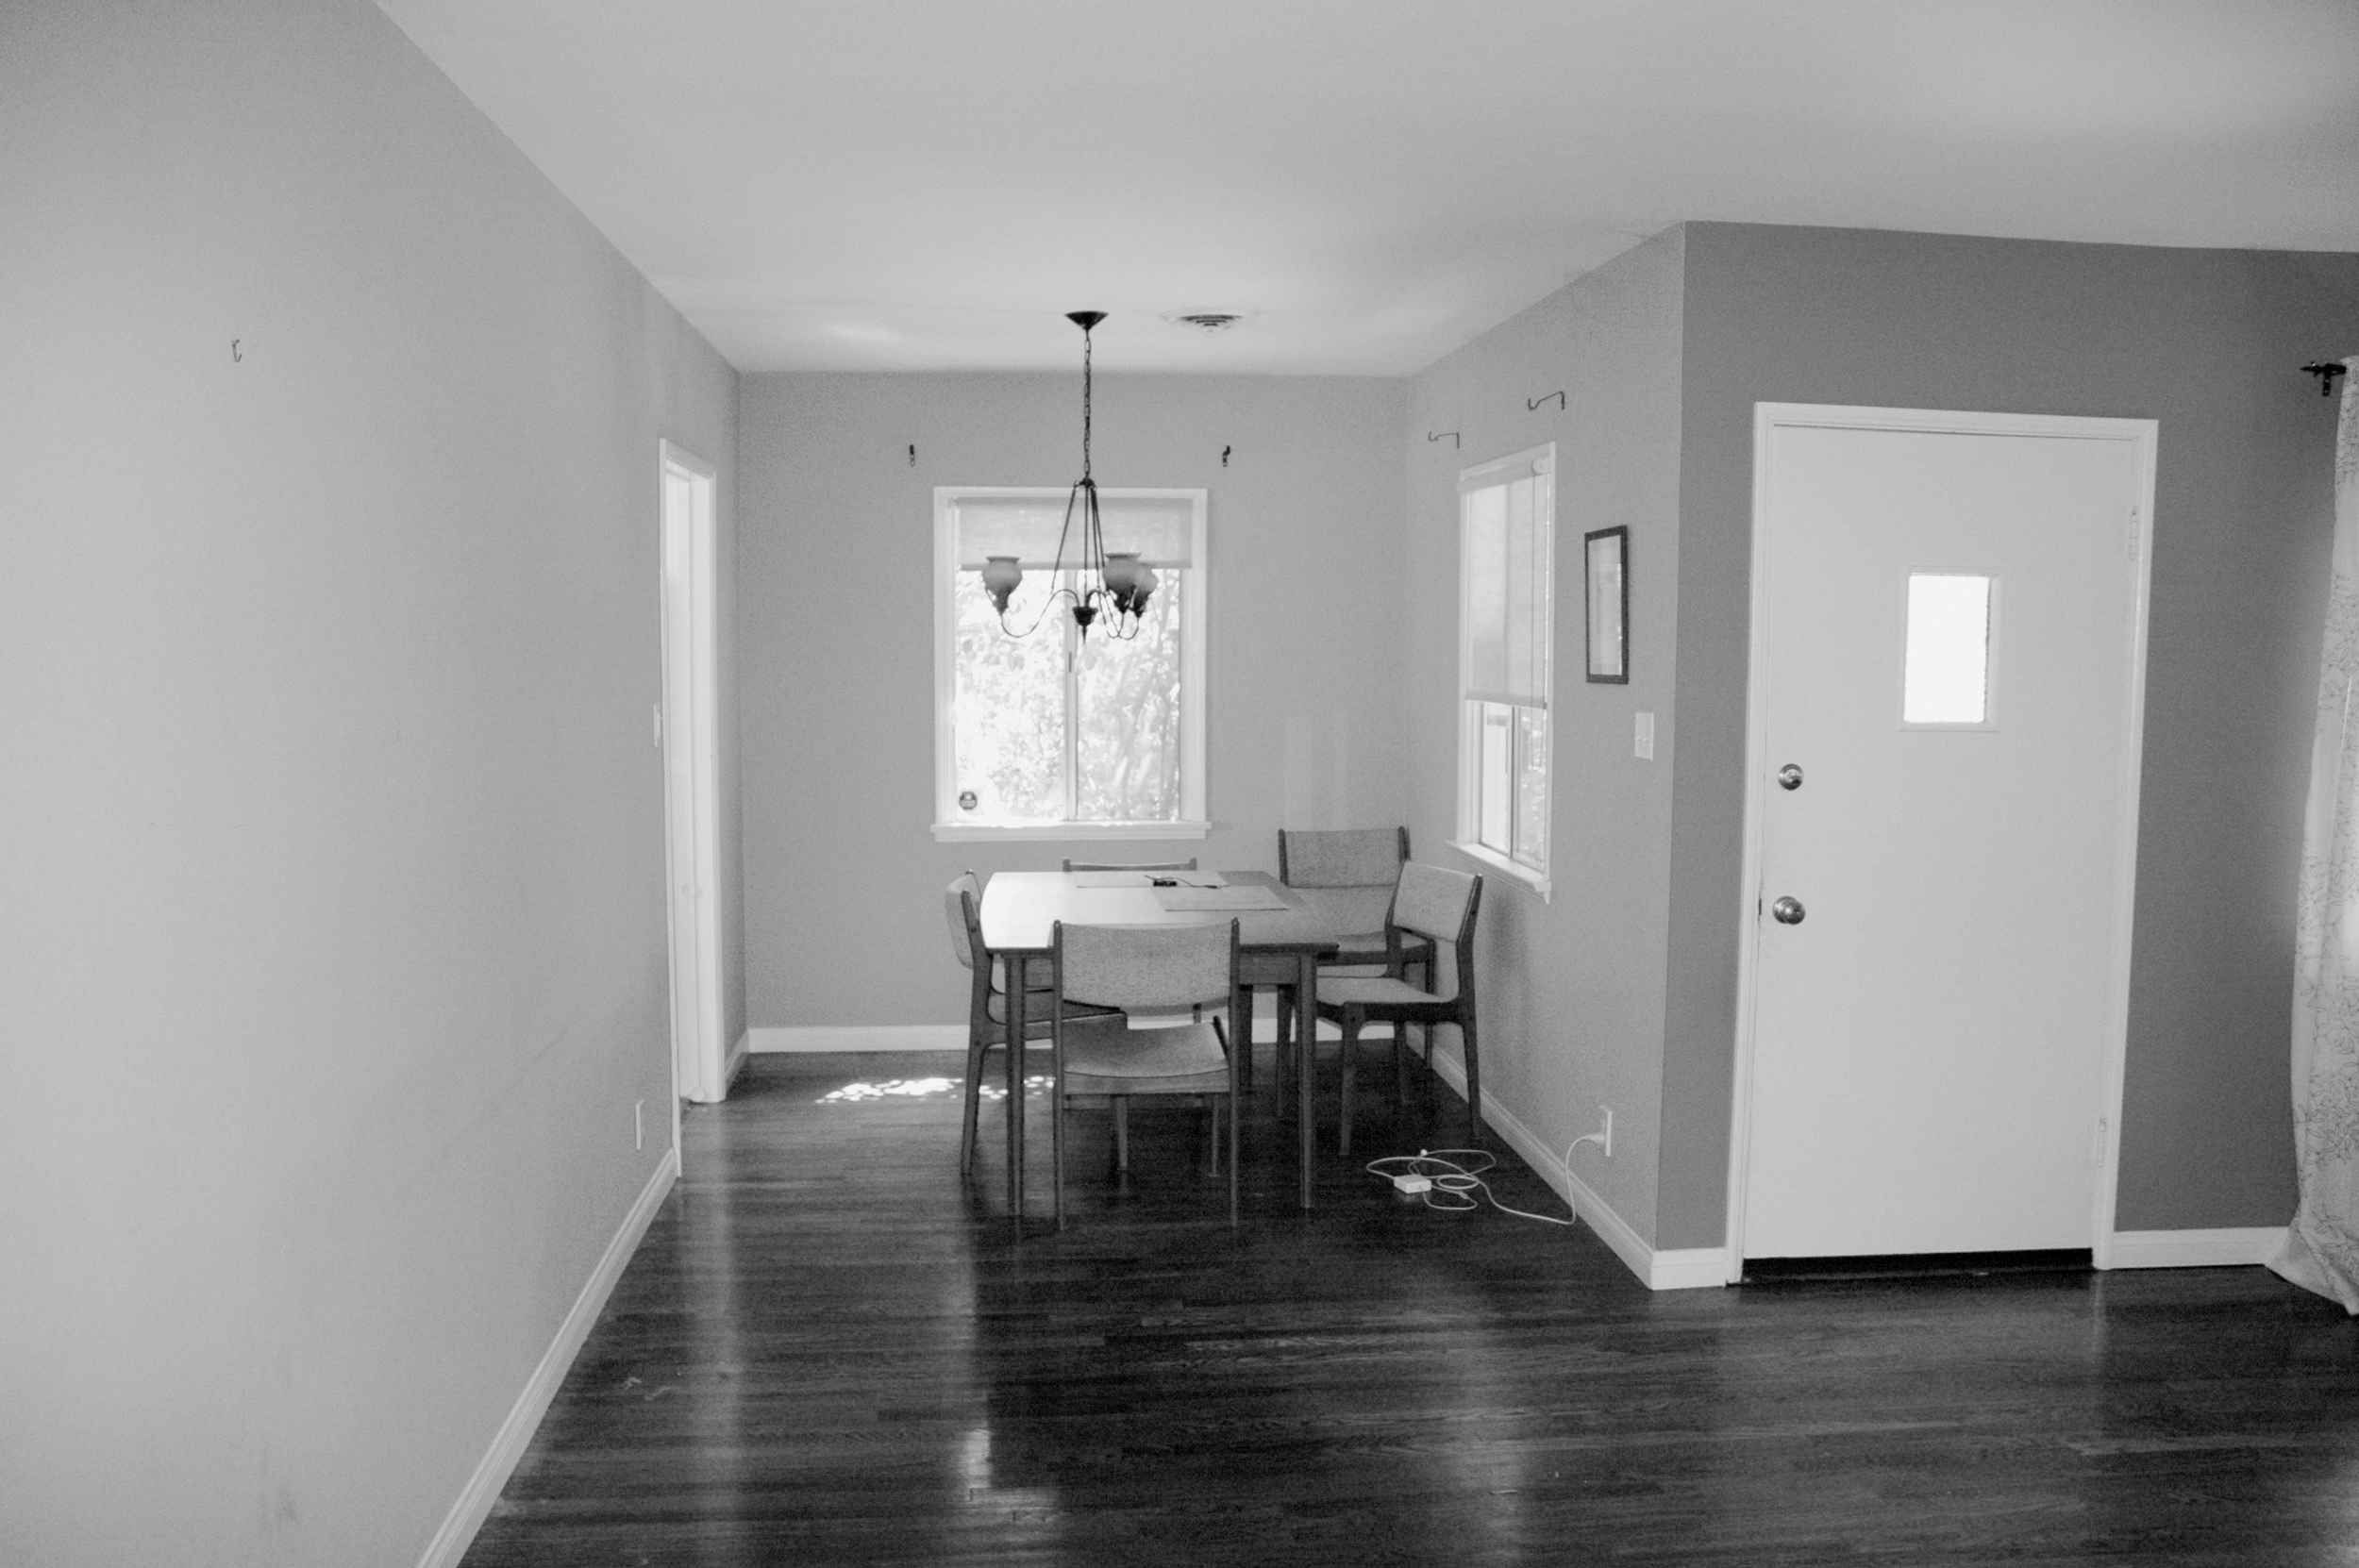 View of the entry and living room prior to the renovation.